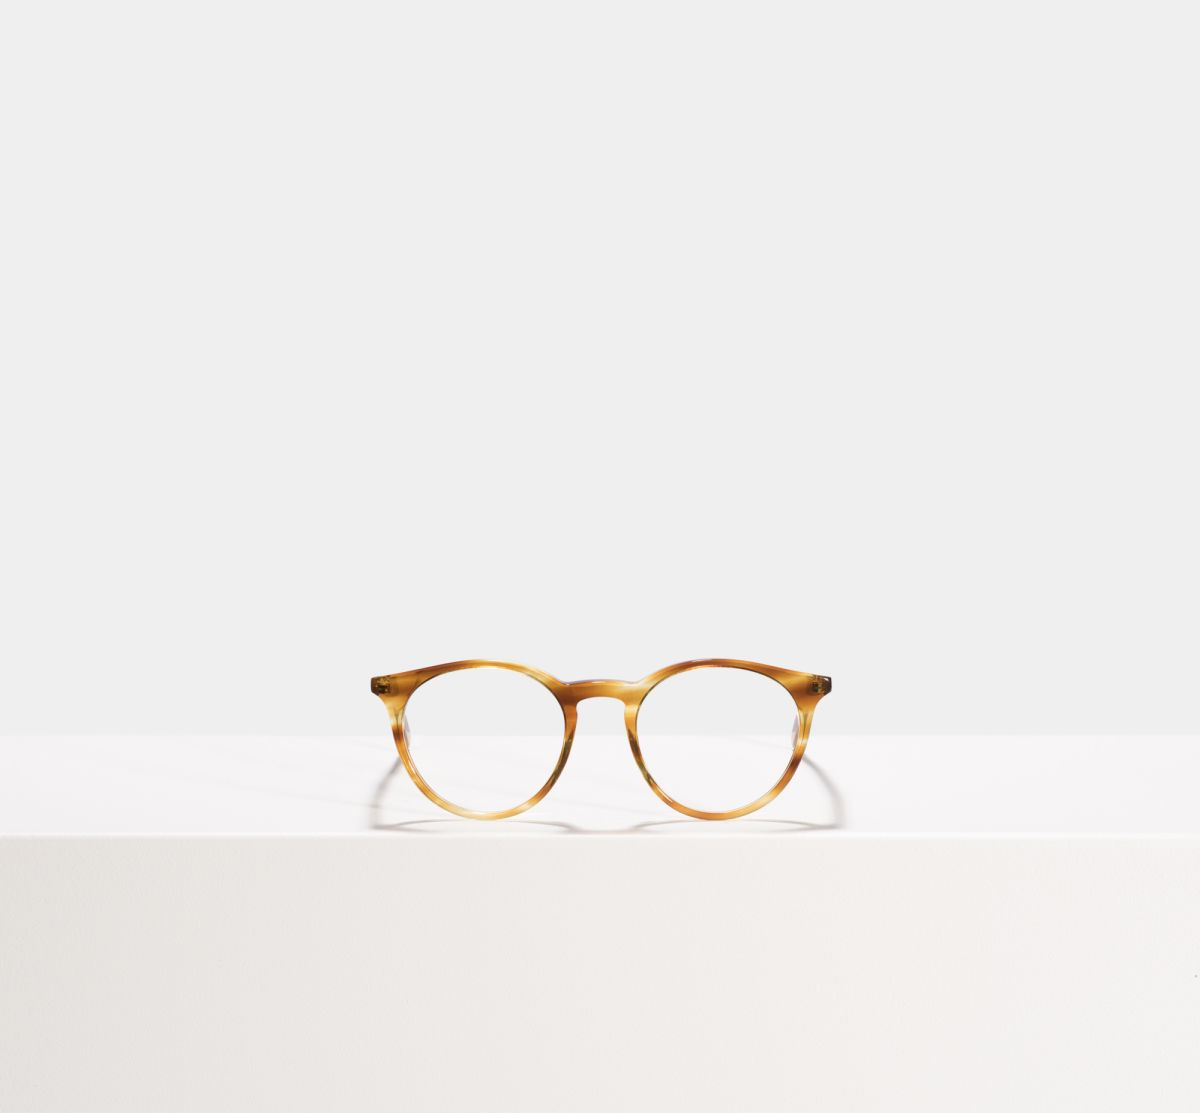 Easton rond acetaat glasses in Caramel Havana by Ace & Tate